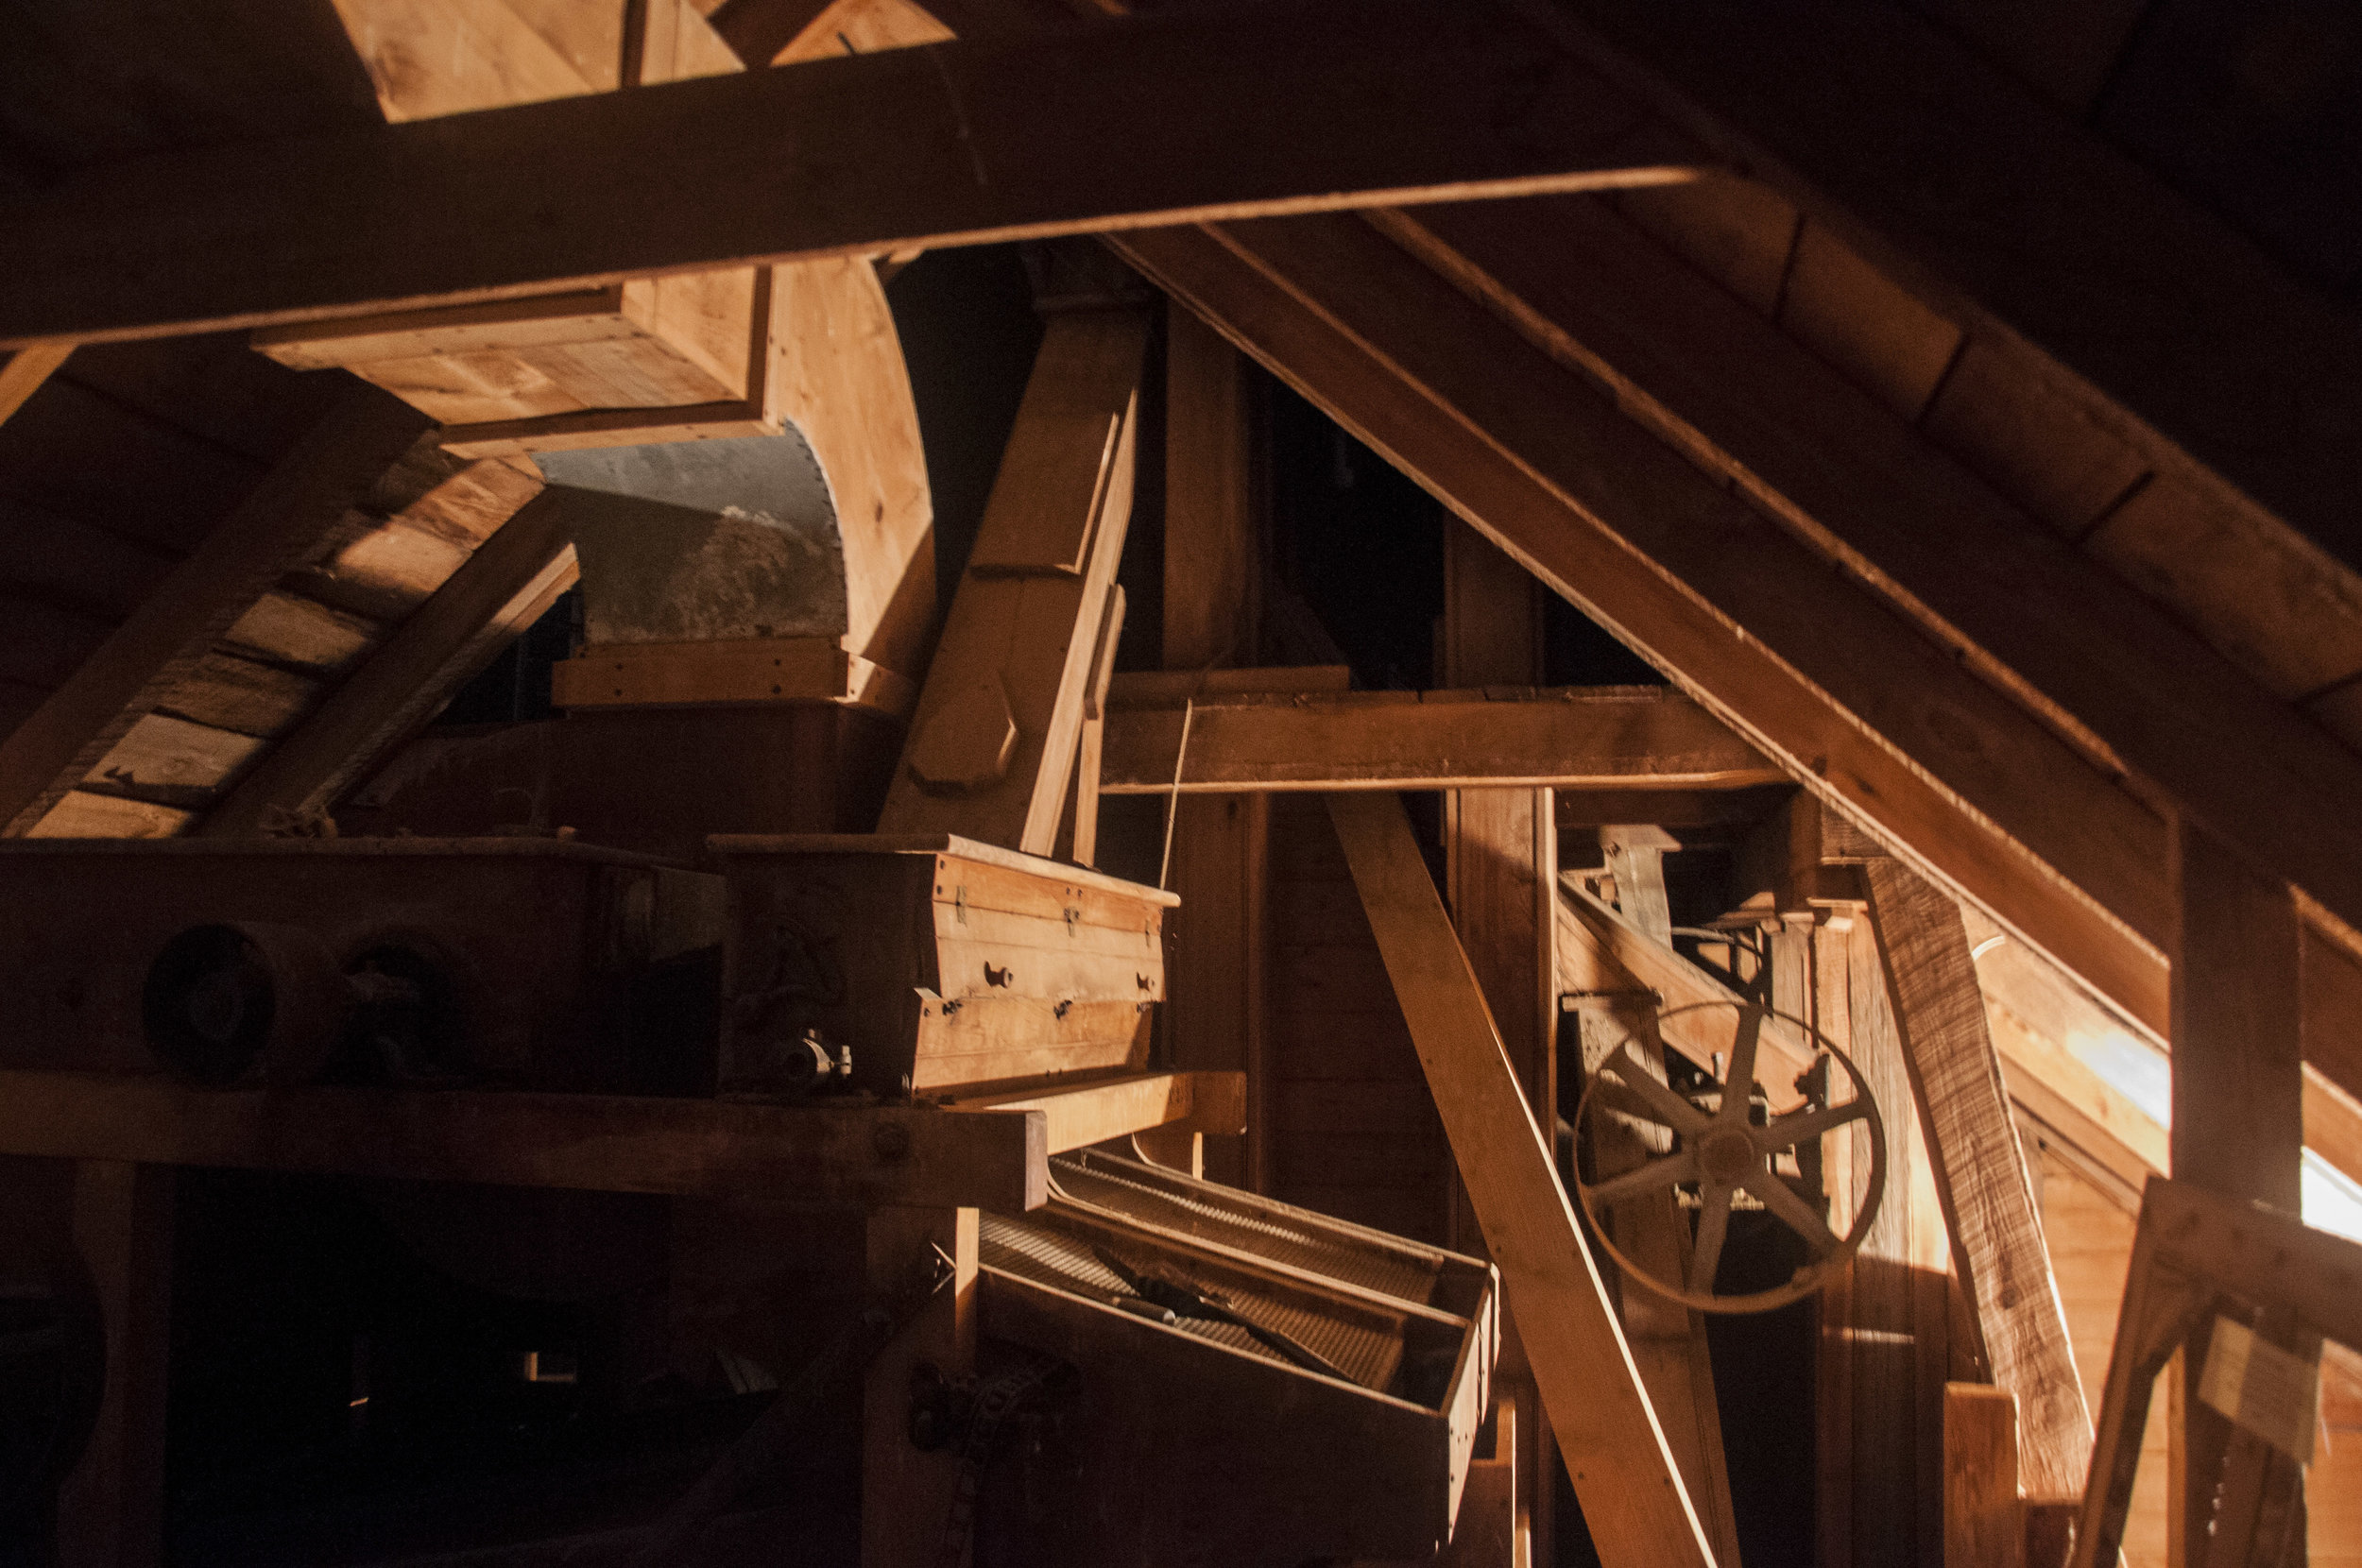 Rafters, Mill interior